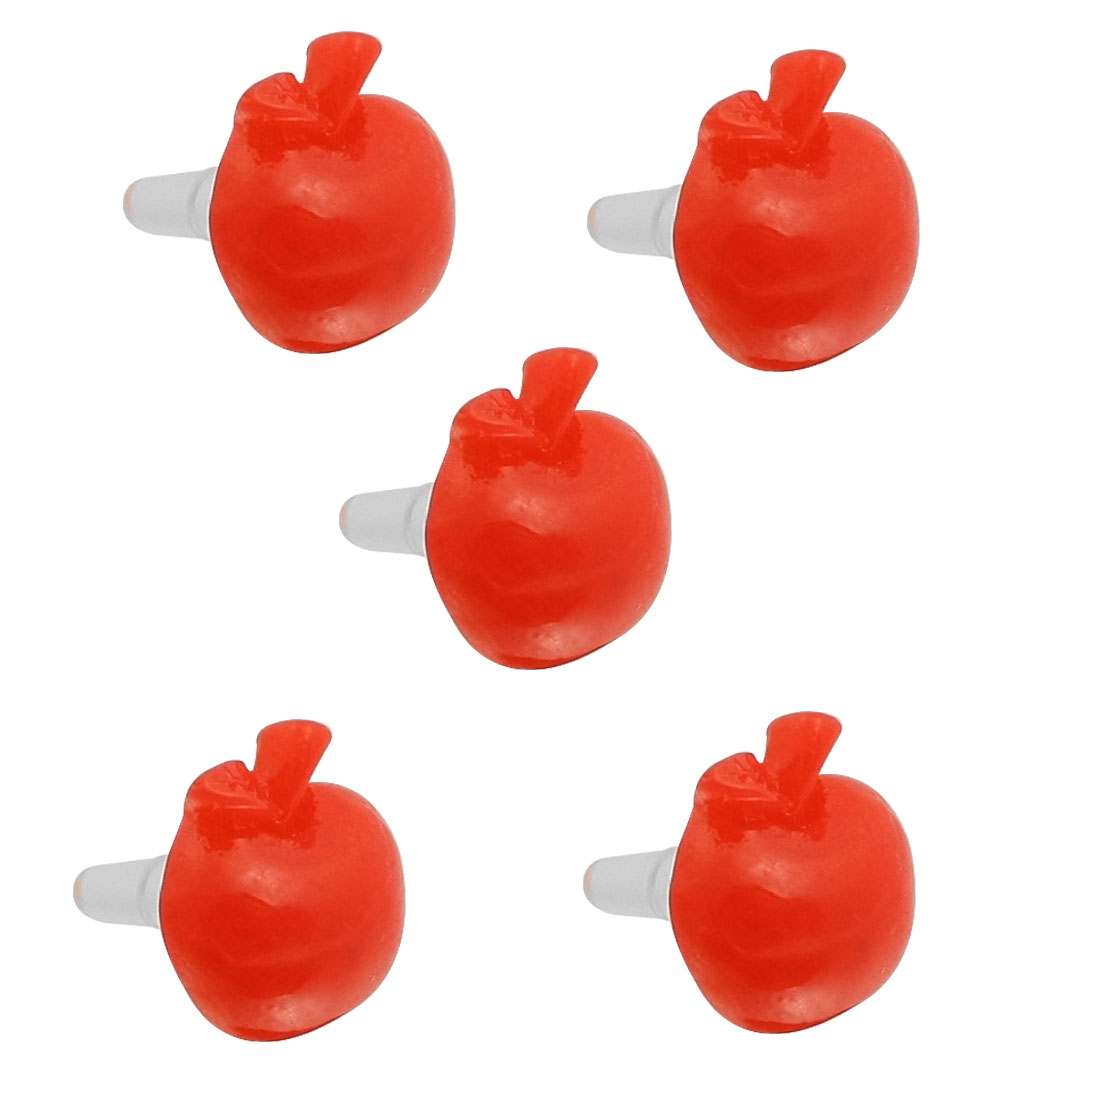 5 Pcs Red Apple Shape 3.5mm Ear Cap Anti Dust Plug Stopper for iPhone 5G 3G 4S